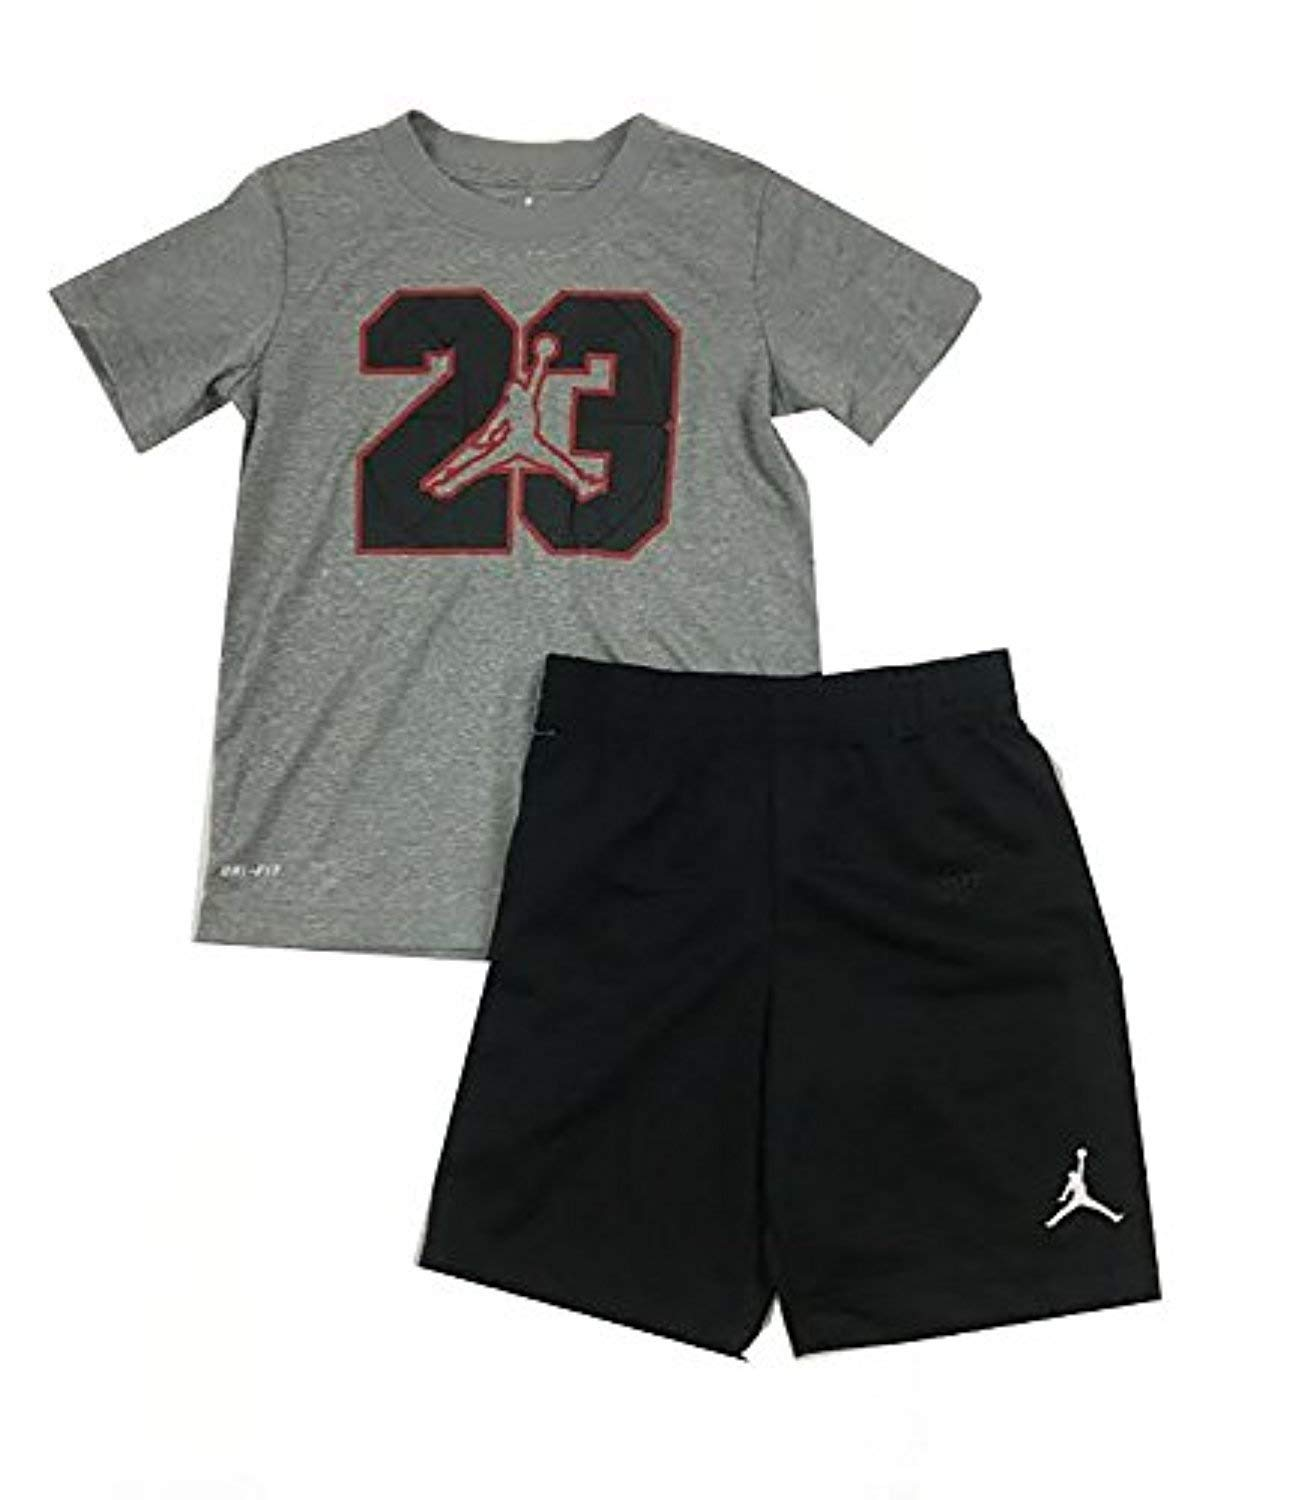 c049eb6d50eb Get Quotations · Jordan Jumpman 23 Logo Little Boys Tee Shirt and Shorts  Set Black Dark Heather Grey